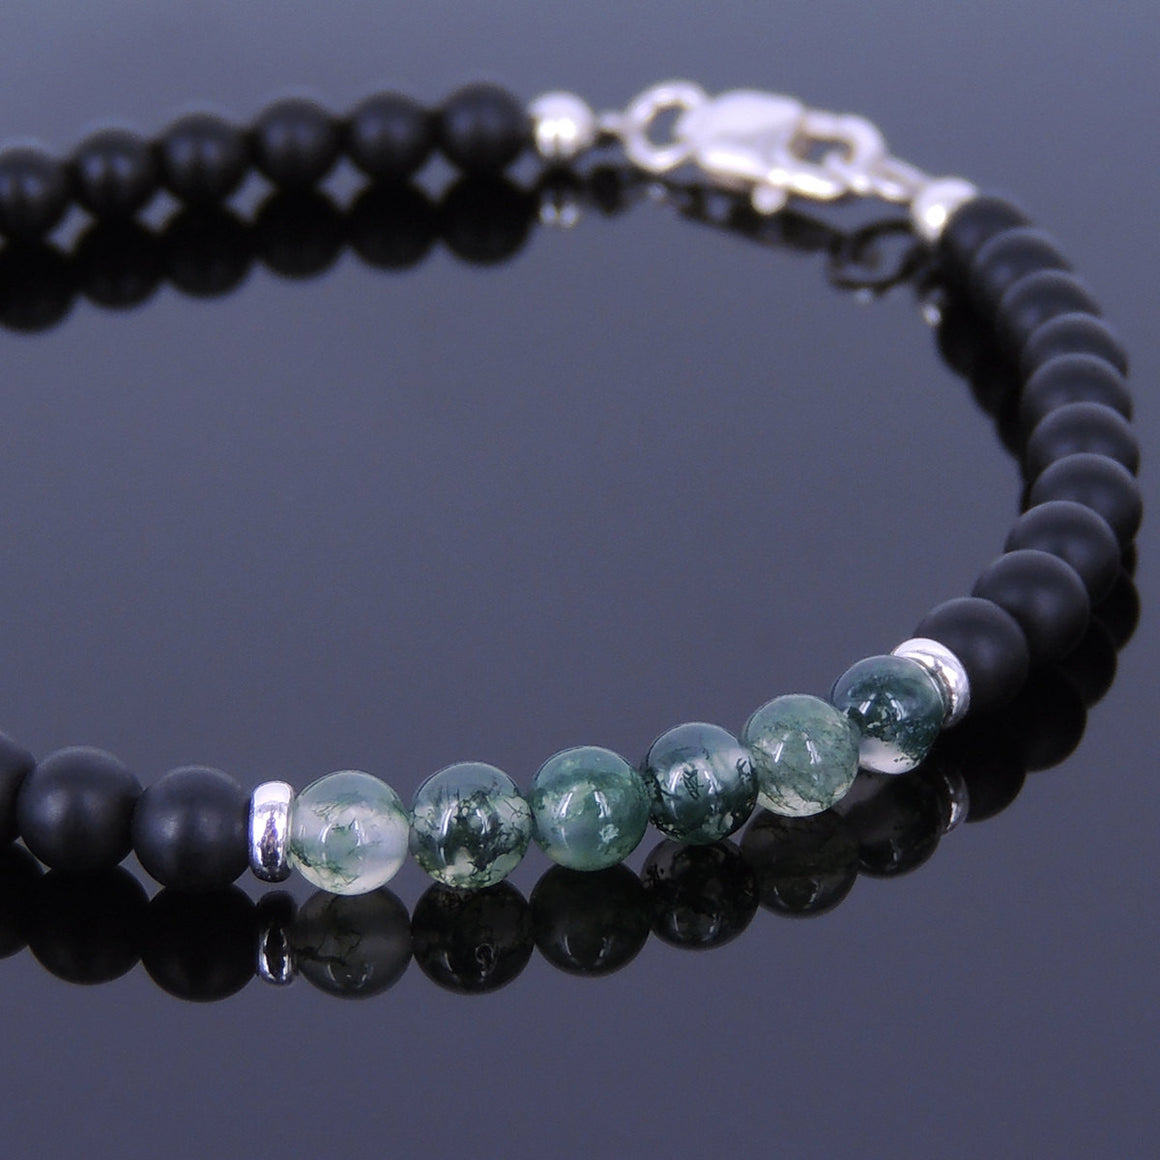 4mm Matte Black Onyx & Grass Agate Healing Gemstone Bracelet with S925 Sterling Silver Spacer Beads & Clasp - Handmade by Gem & Silver BR535